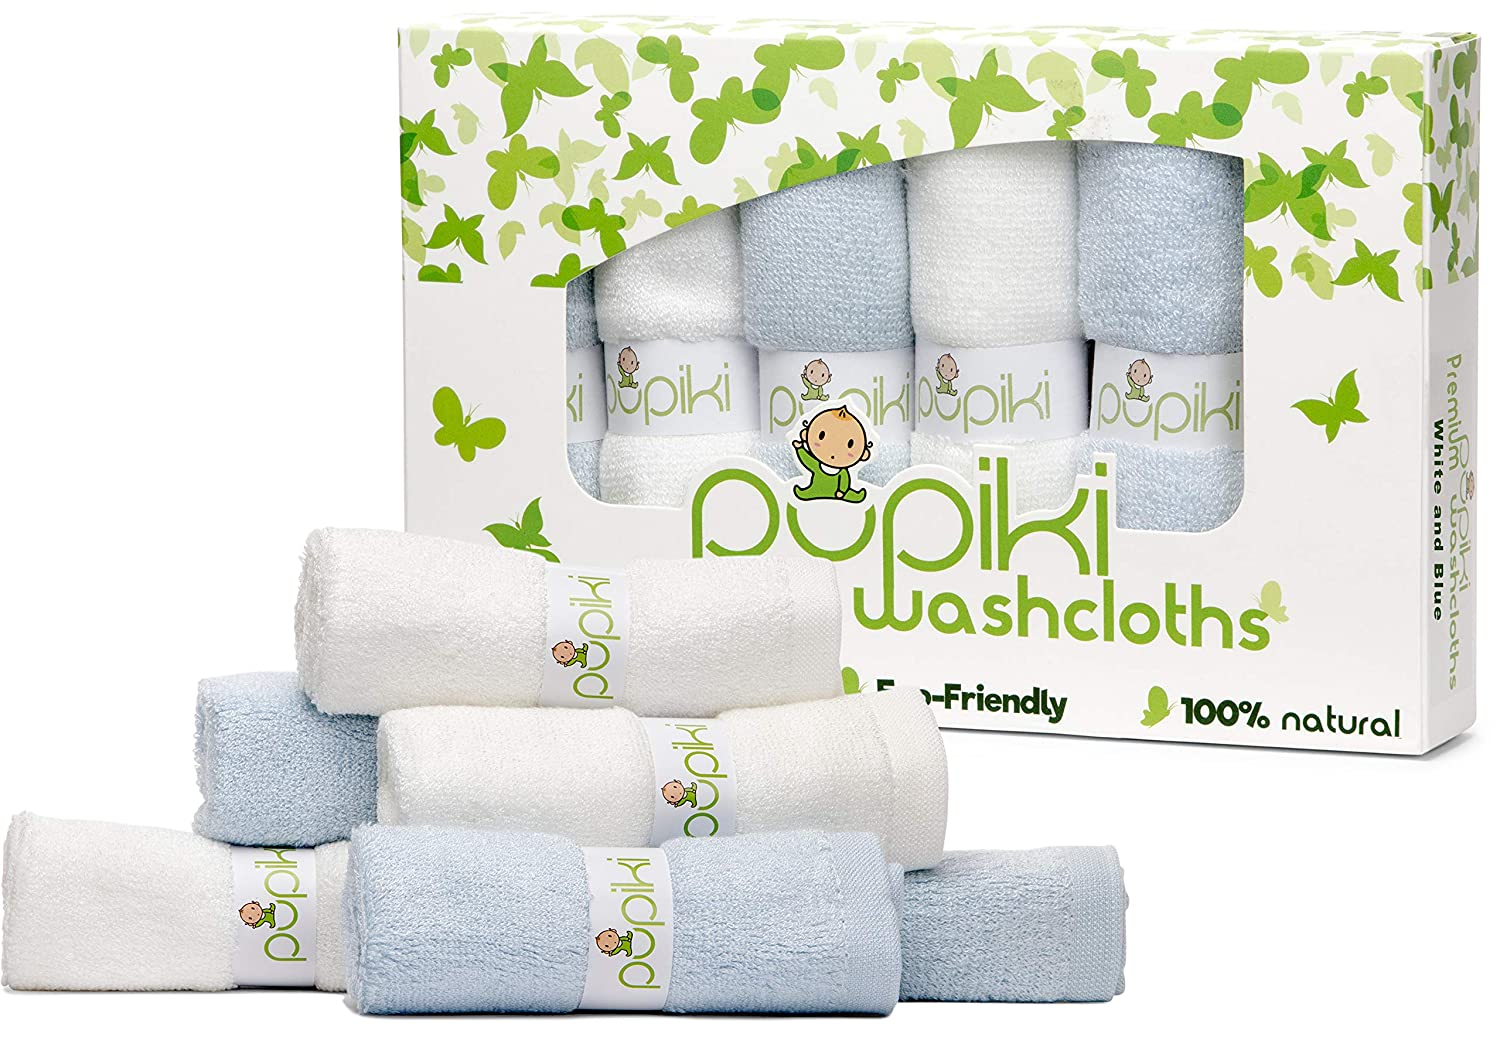 Pupiki Premium Baby Washcloths Organic Bamboo 6 Ultra-Soft Hypoallergenic for Baby Bath Washcloth Face Towels Absorbent 10X10 Newborn Towel Pack from Rayon Fiber Unisex Baby Shower Gift White & Blue